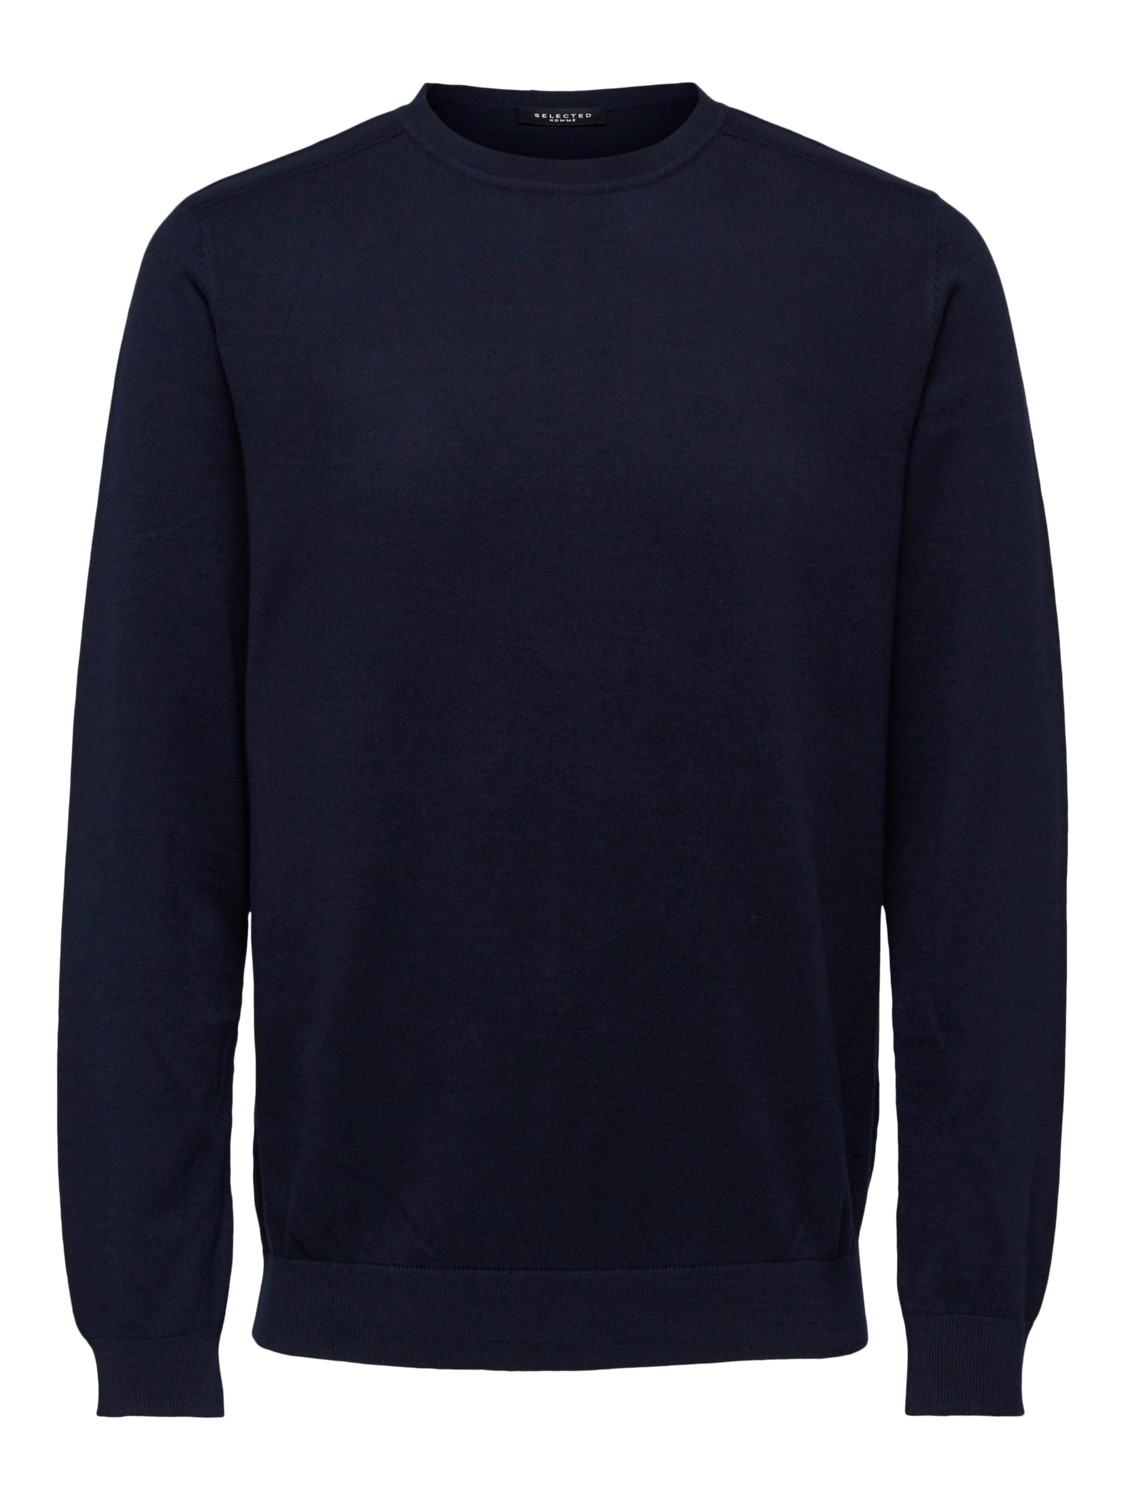 Selected - slhberg crew neck Strik navy | Gate36 Hobro